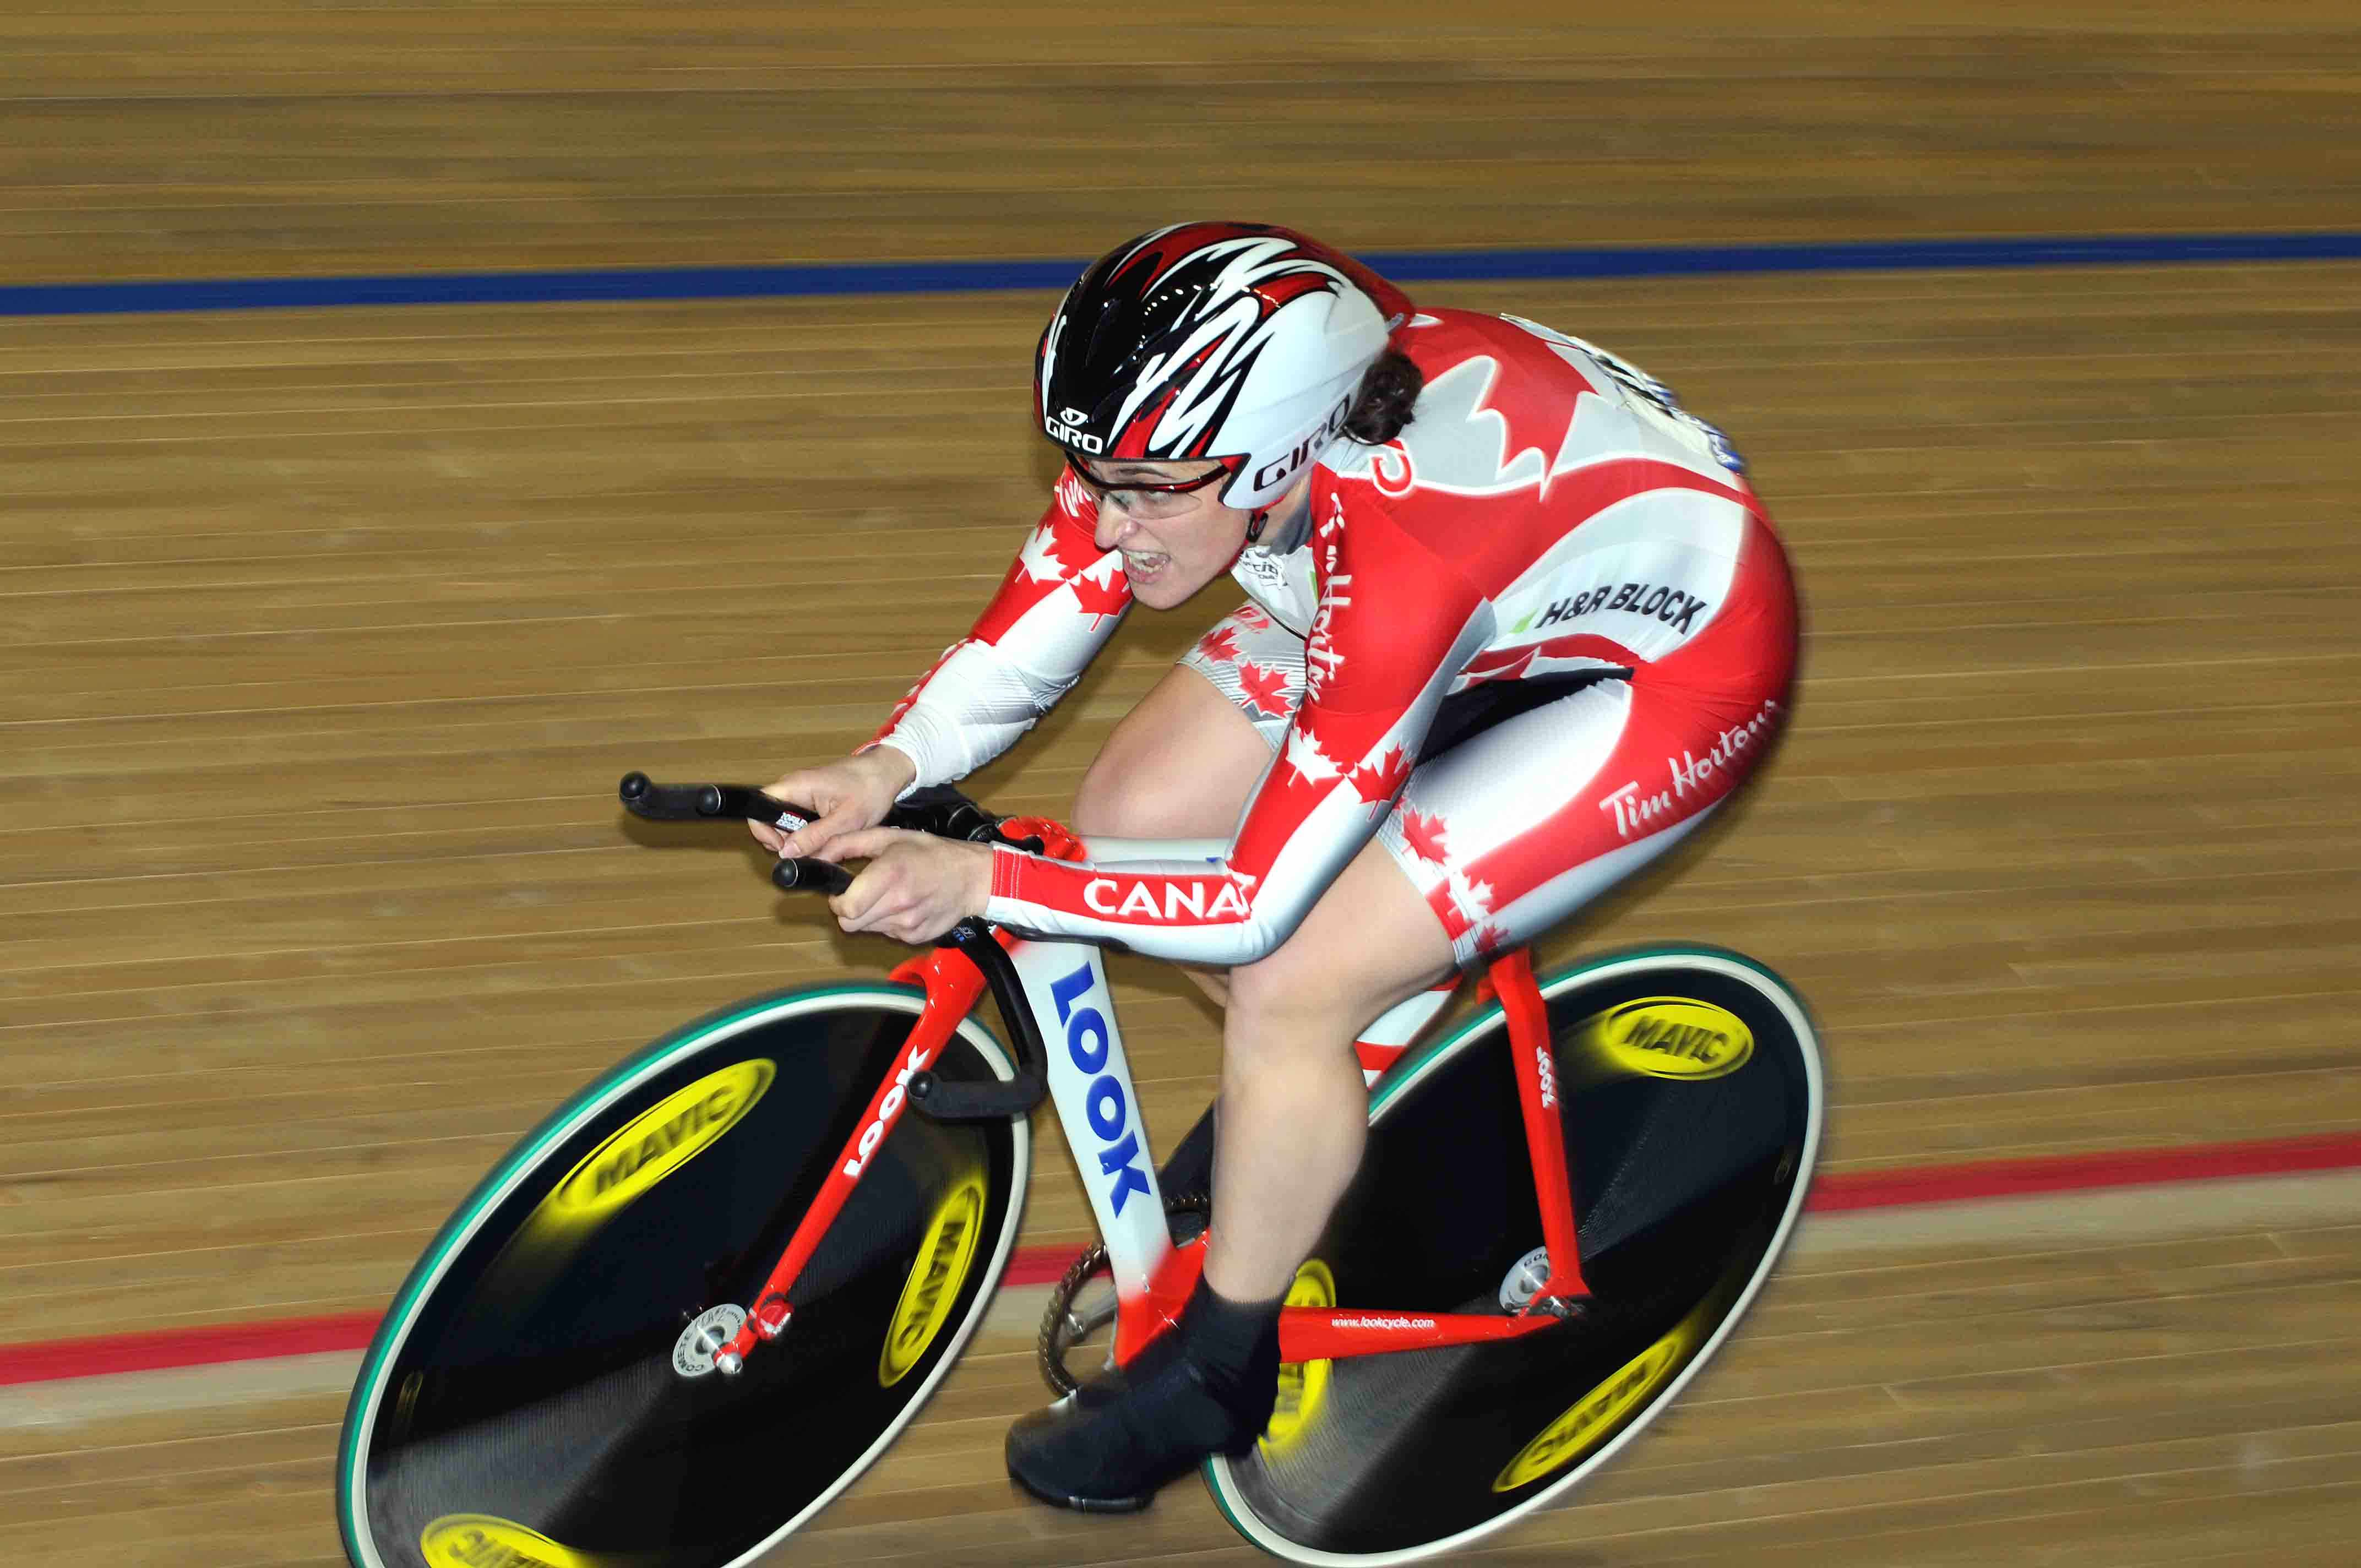 Tara Whitten (Canada) in action during the qualifying rounds of the women's individual pursuit